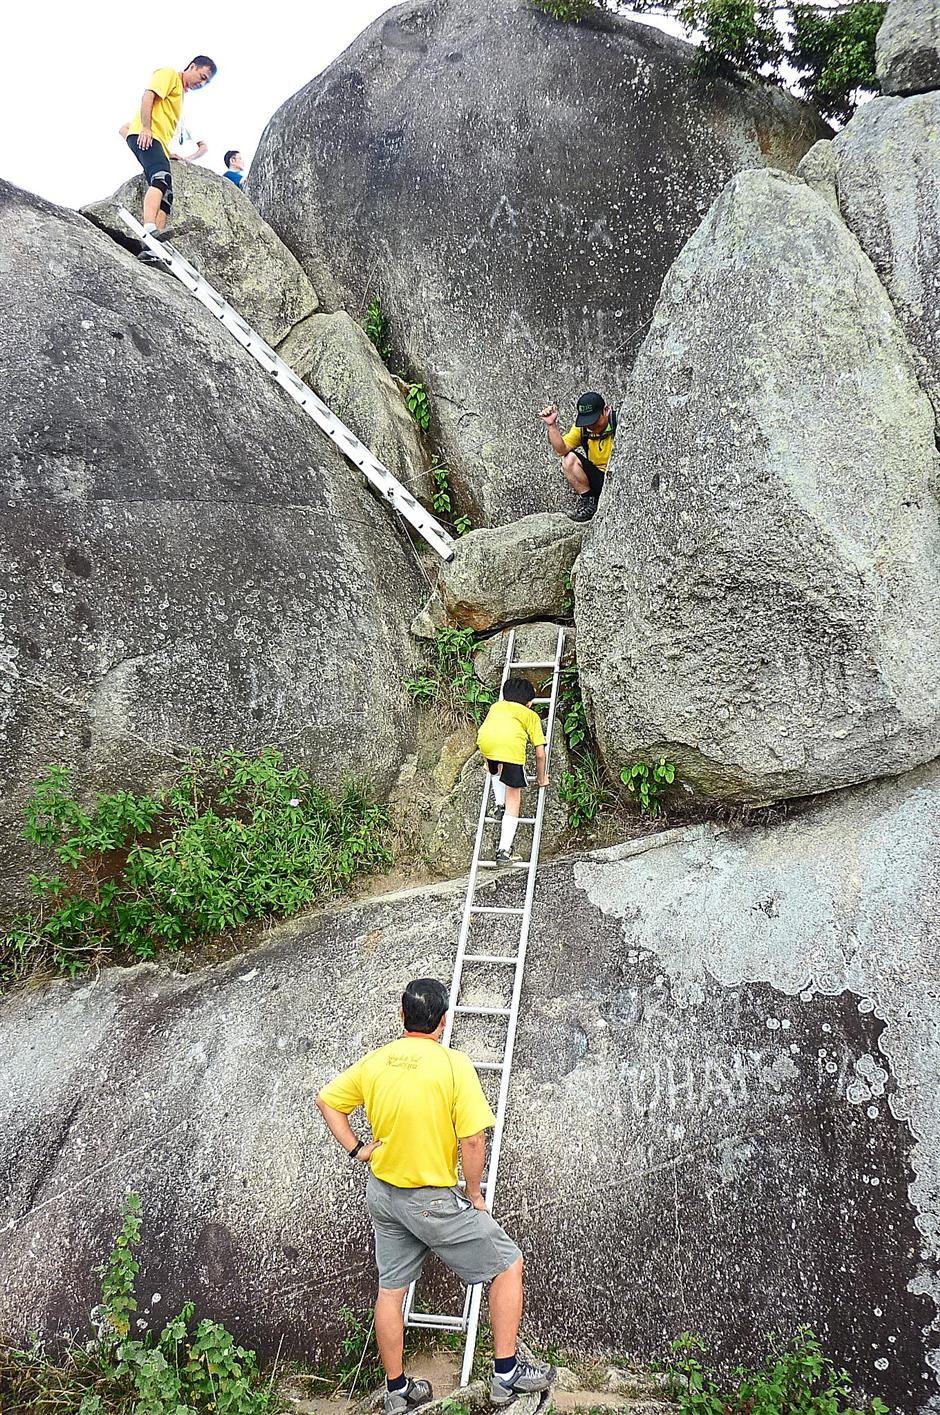 To reach the actual peak of Gunung Datuk, the writers family had to clamber up these ladders.